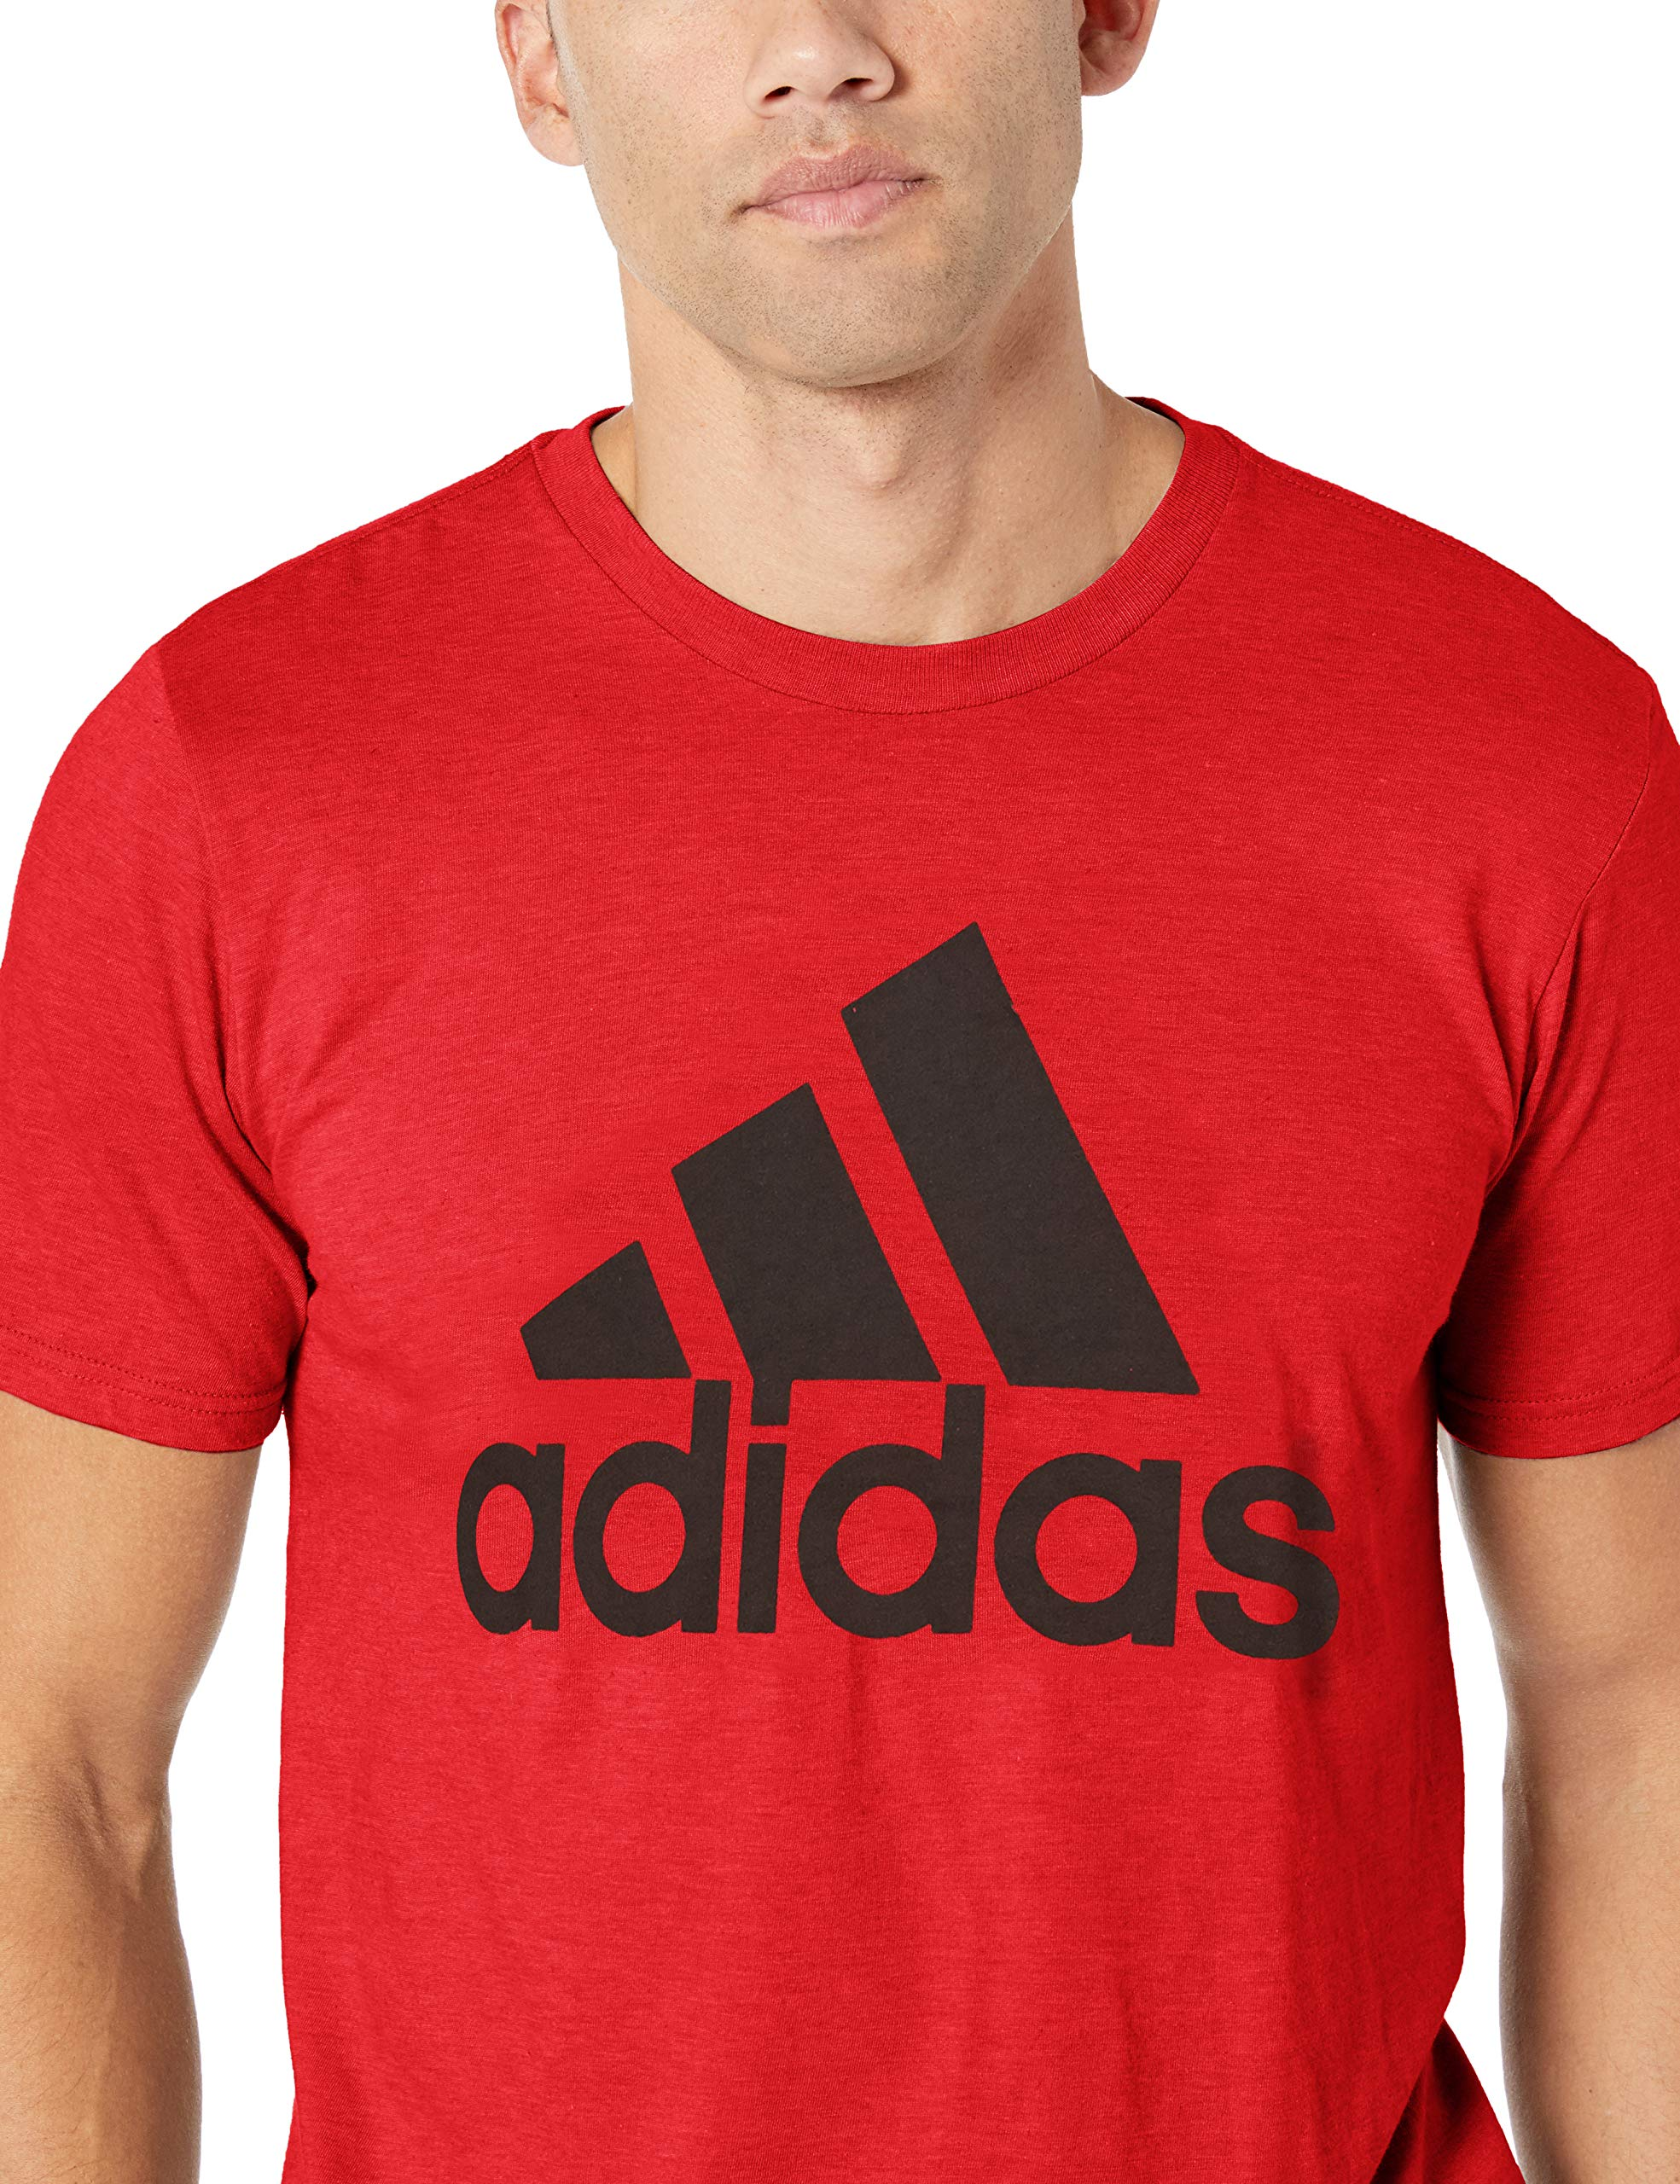 adidas Men's Badge of Sport Graphic Tee, Scarlet/Black